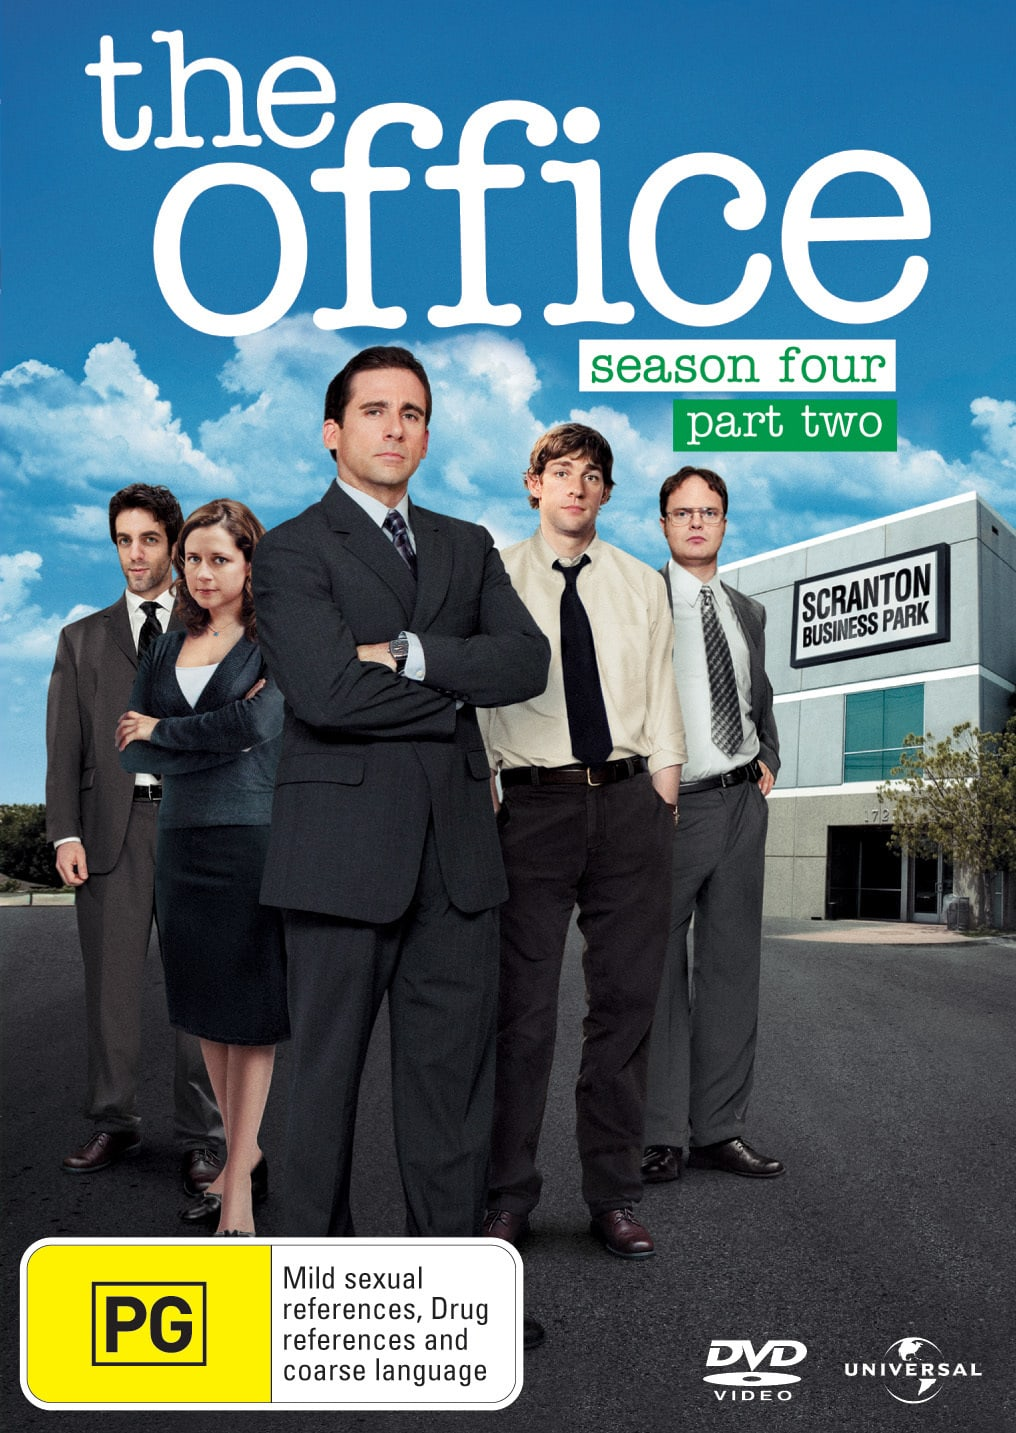 The Office - An American Workplace: Season Four, Part Two [DVD]